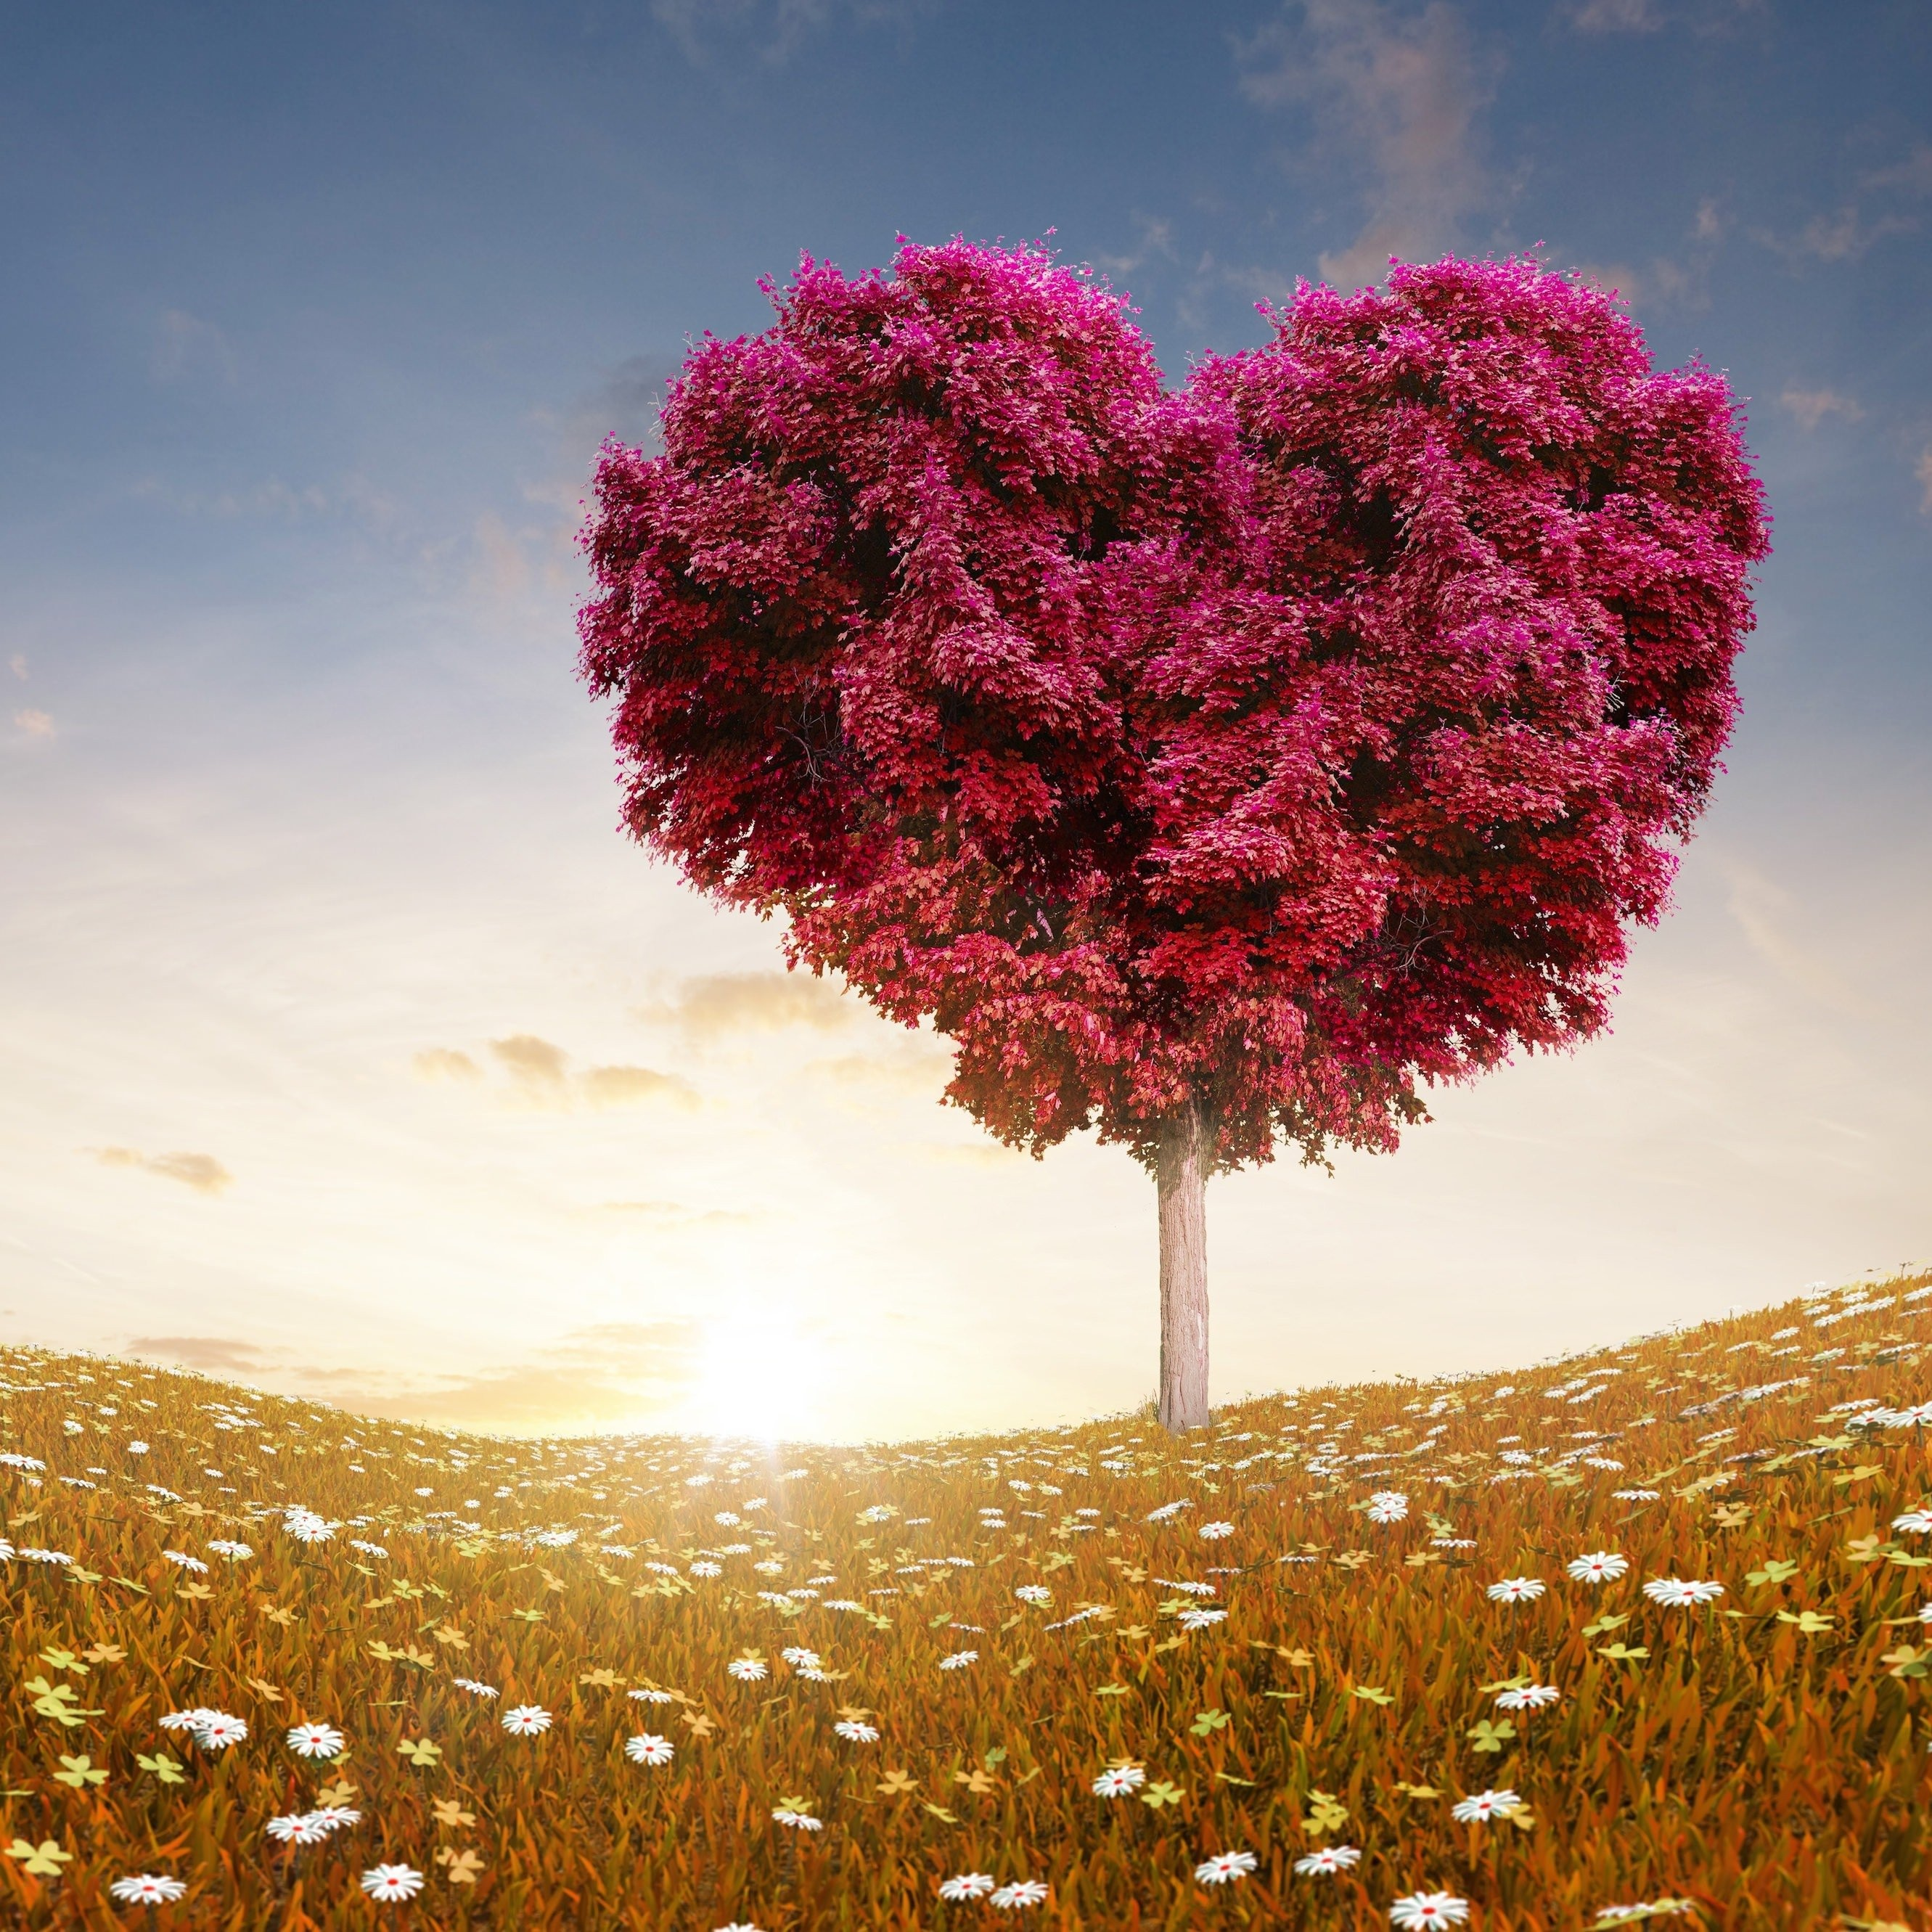 Love Wallpaper Iphone 6 Plus : Download Tree Of Love HD wallpaper for iPhone 6 Plus ...